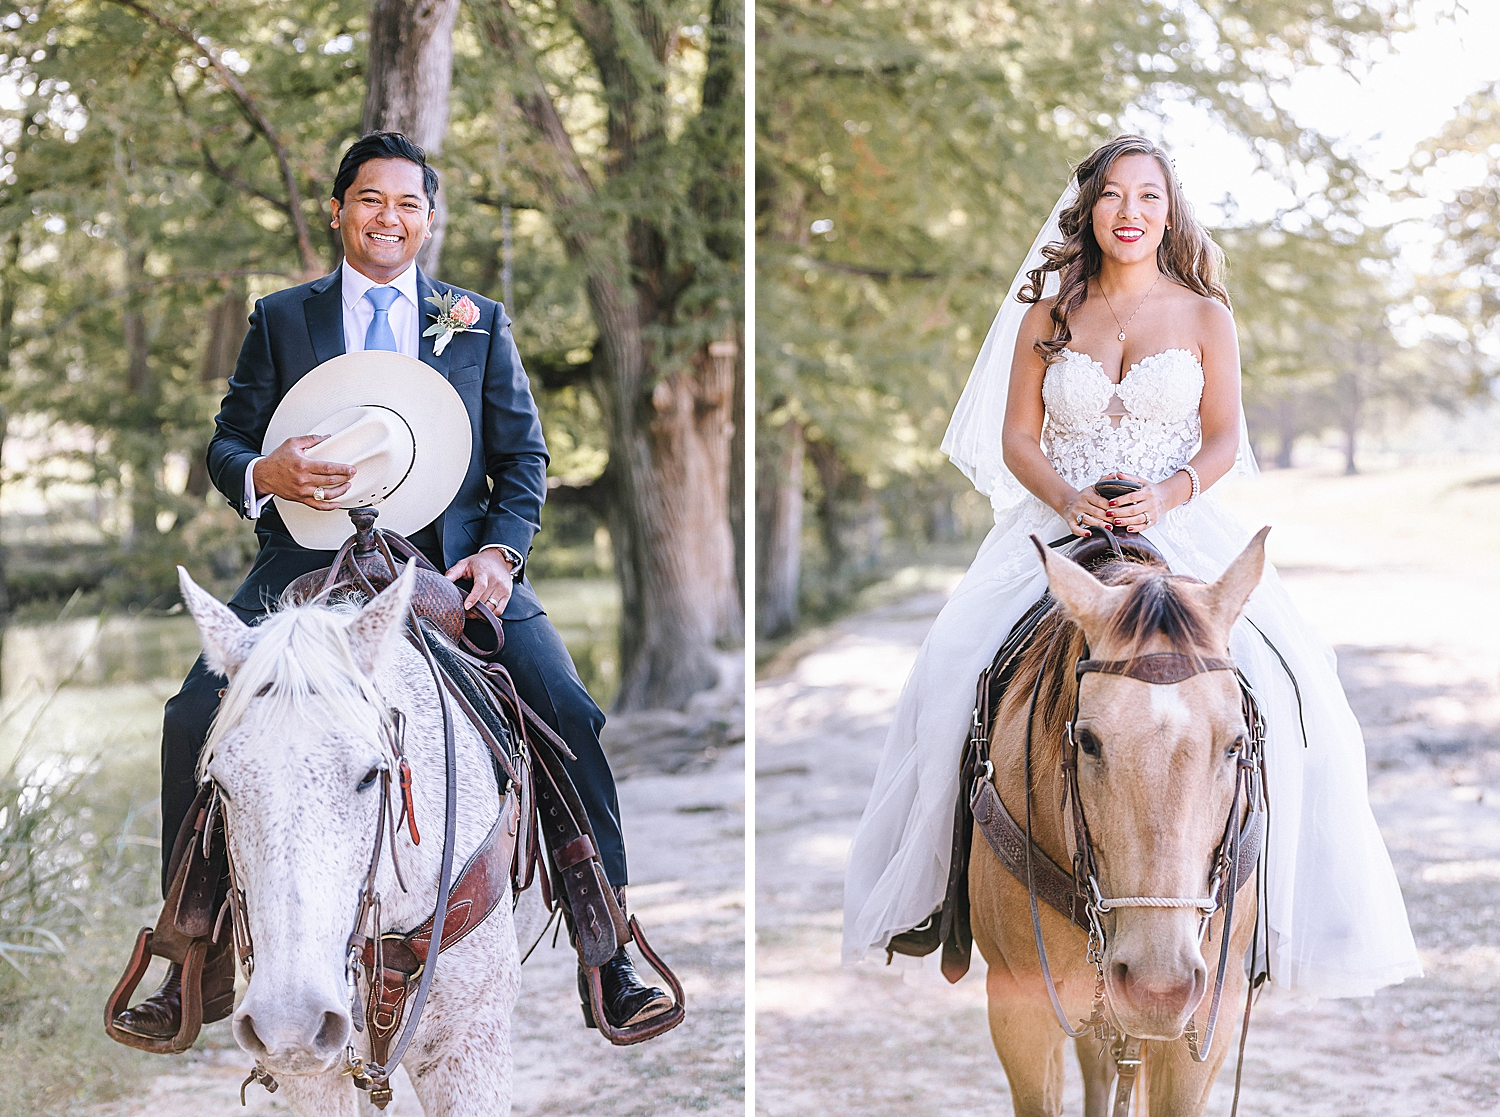 Bandera-Texas-Wedding-Photographer-Bride-Groom-on-Horses-Carly-Barton-Photography_0029.jpg